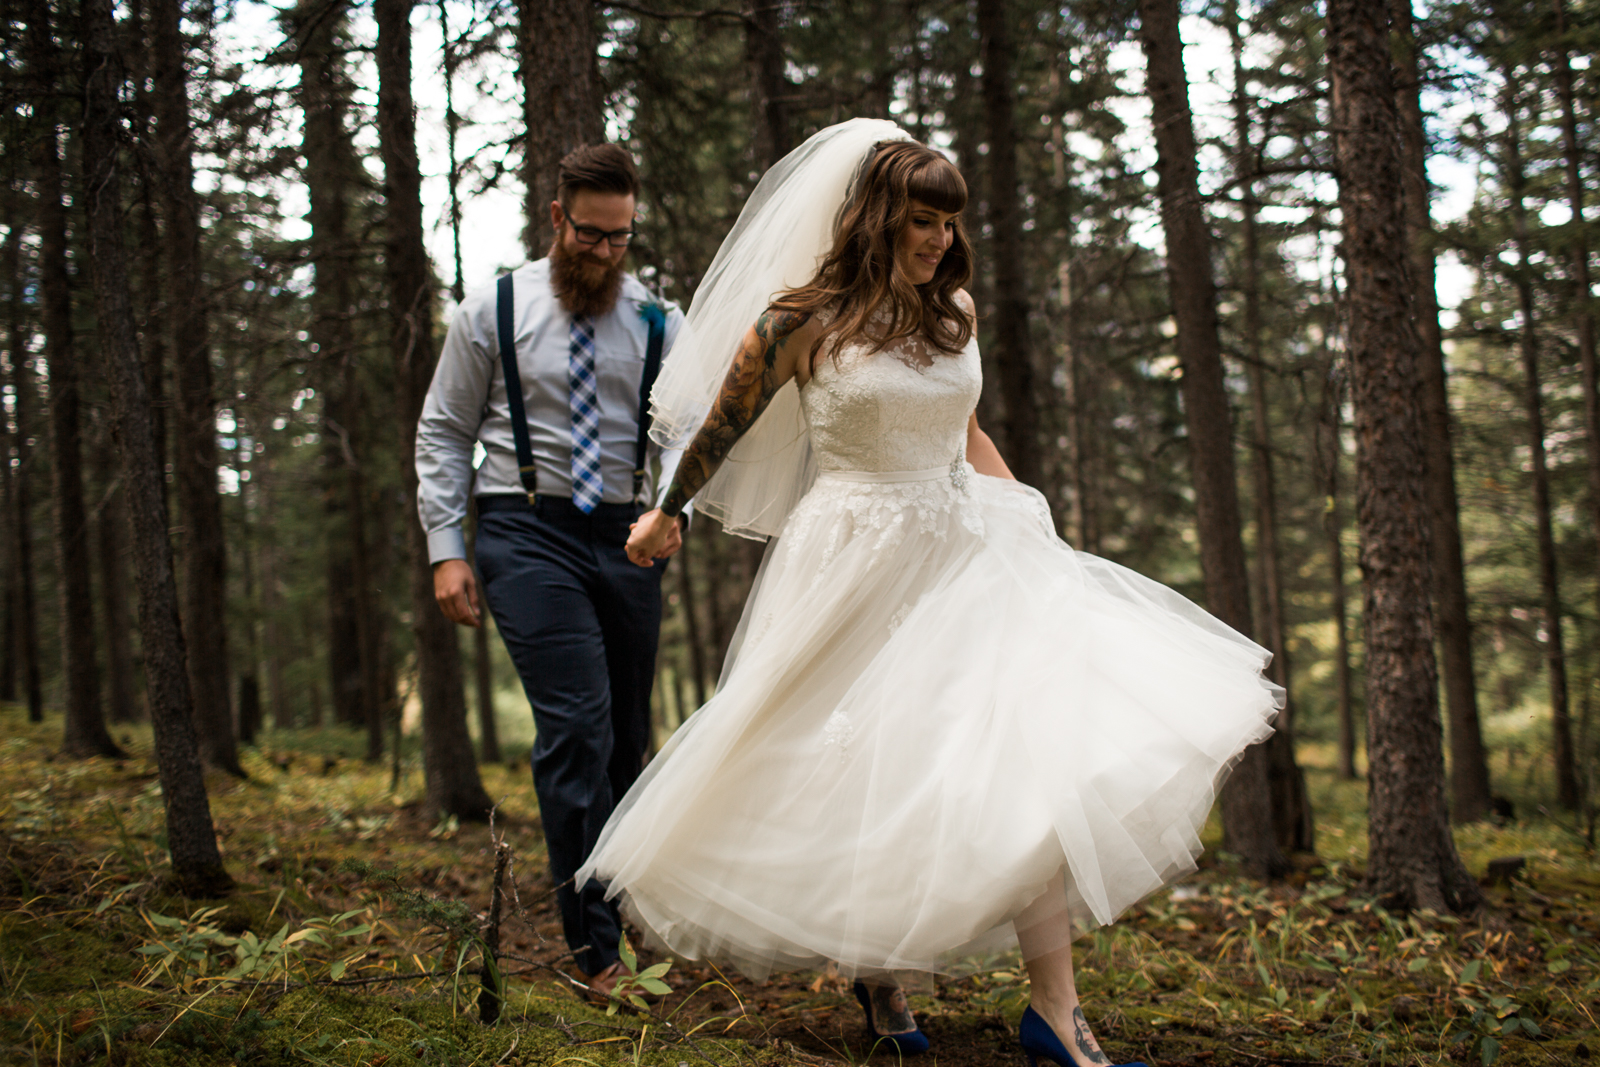 34-willow_and_wolf_photography_stephanie_and_kyle_banff_wedding_blogatp_7639